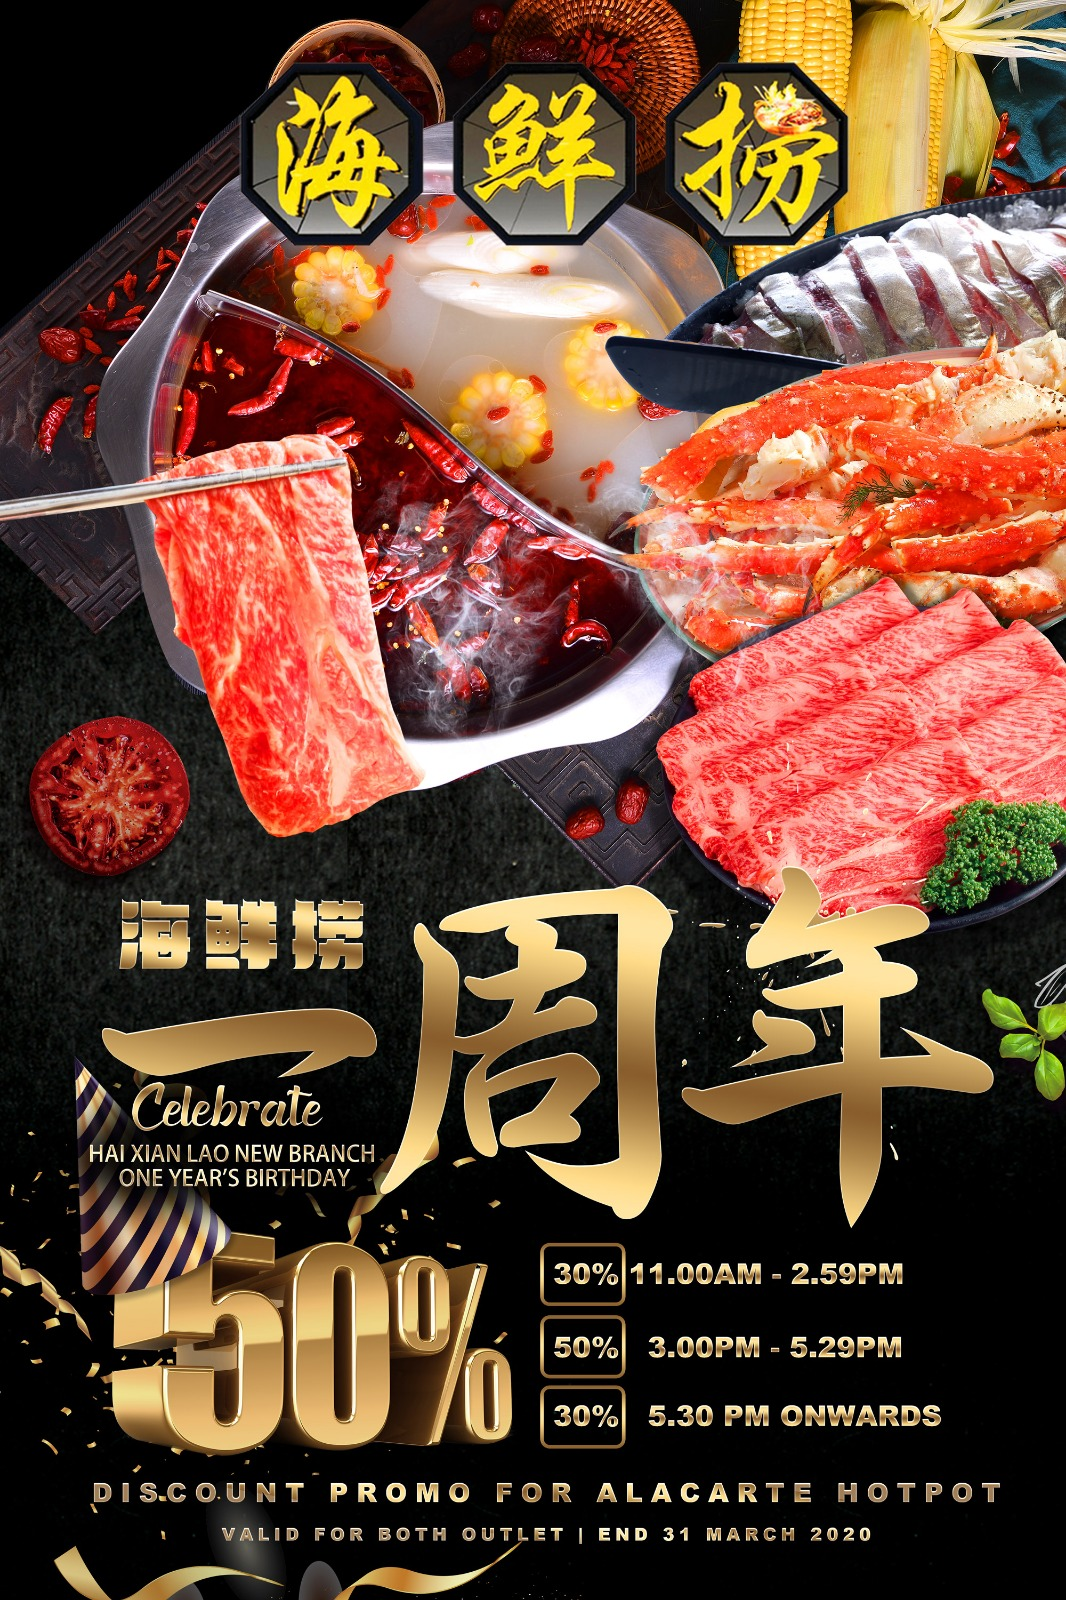 Get up to 50% off on Hai Xian Lao's Premium Hotpot | Why Not Deals & Promotions